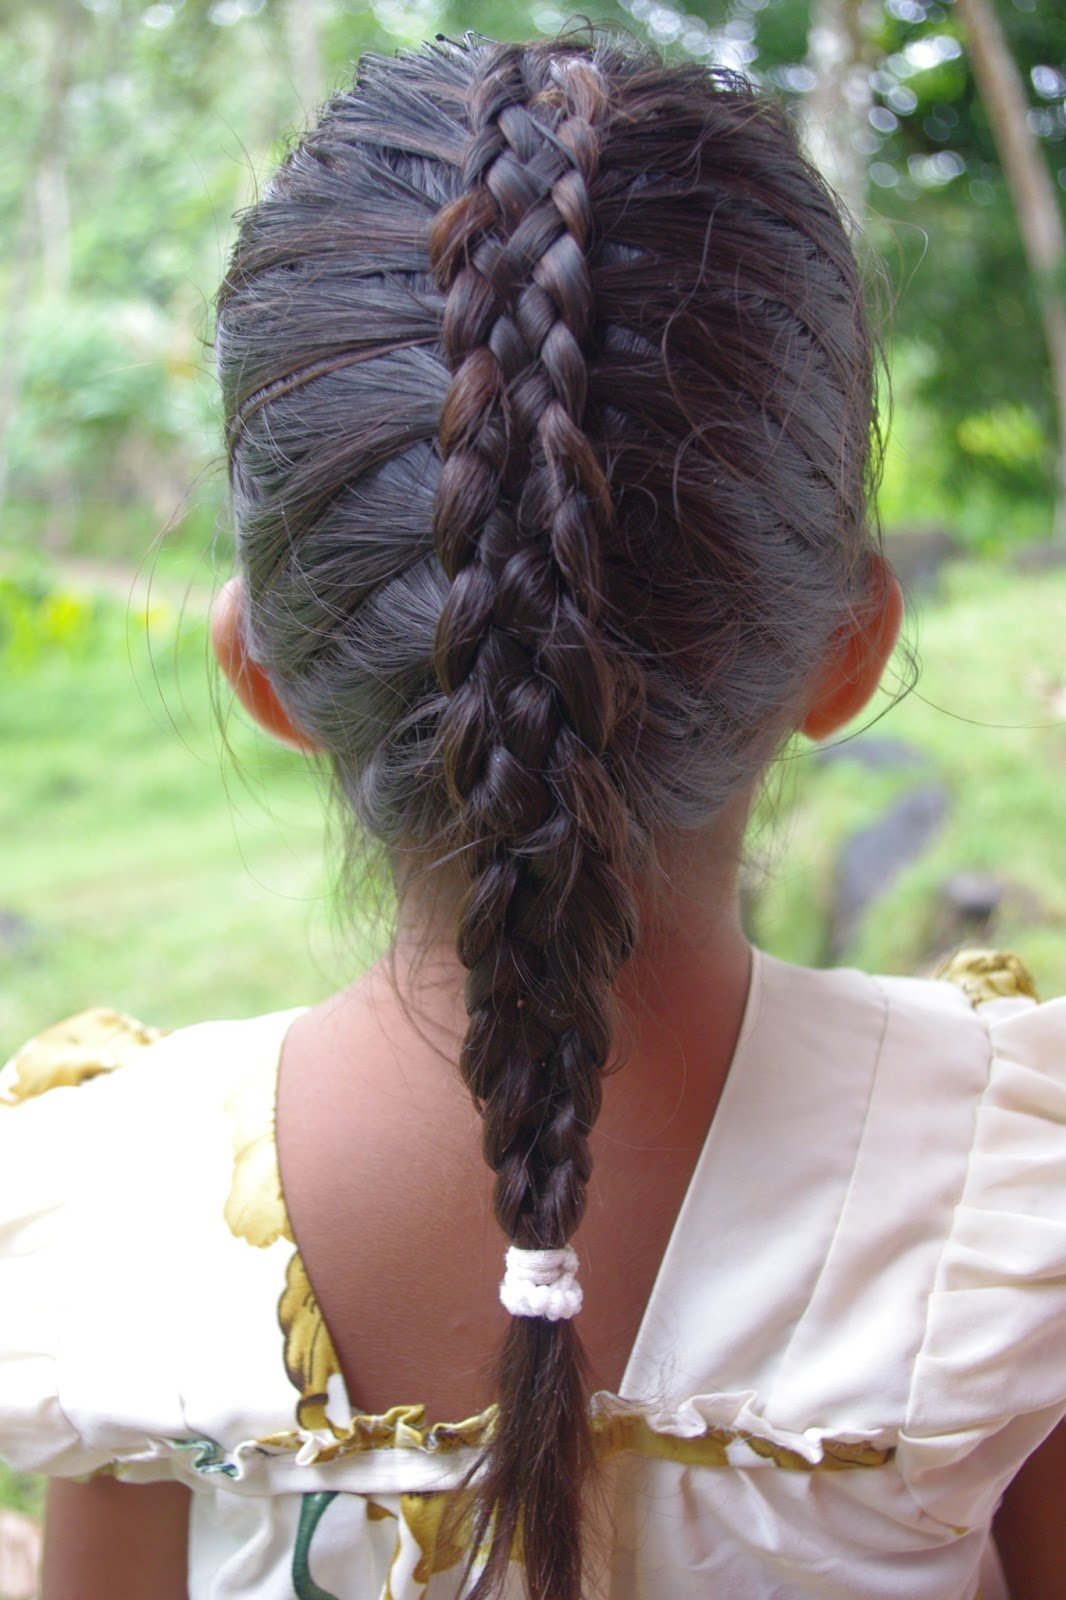 New Braids Hairstyles For Super Long Hair Micronesian Girl Two Cute Braided Hairstyles For Big Ideas With Pictures